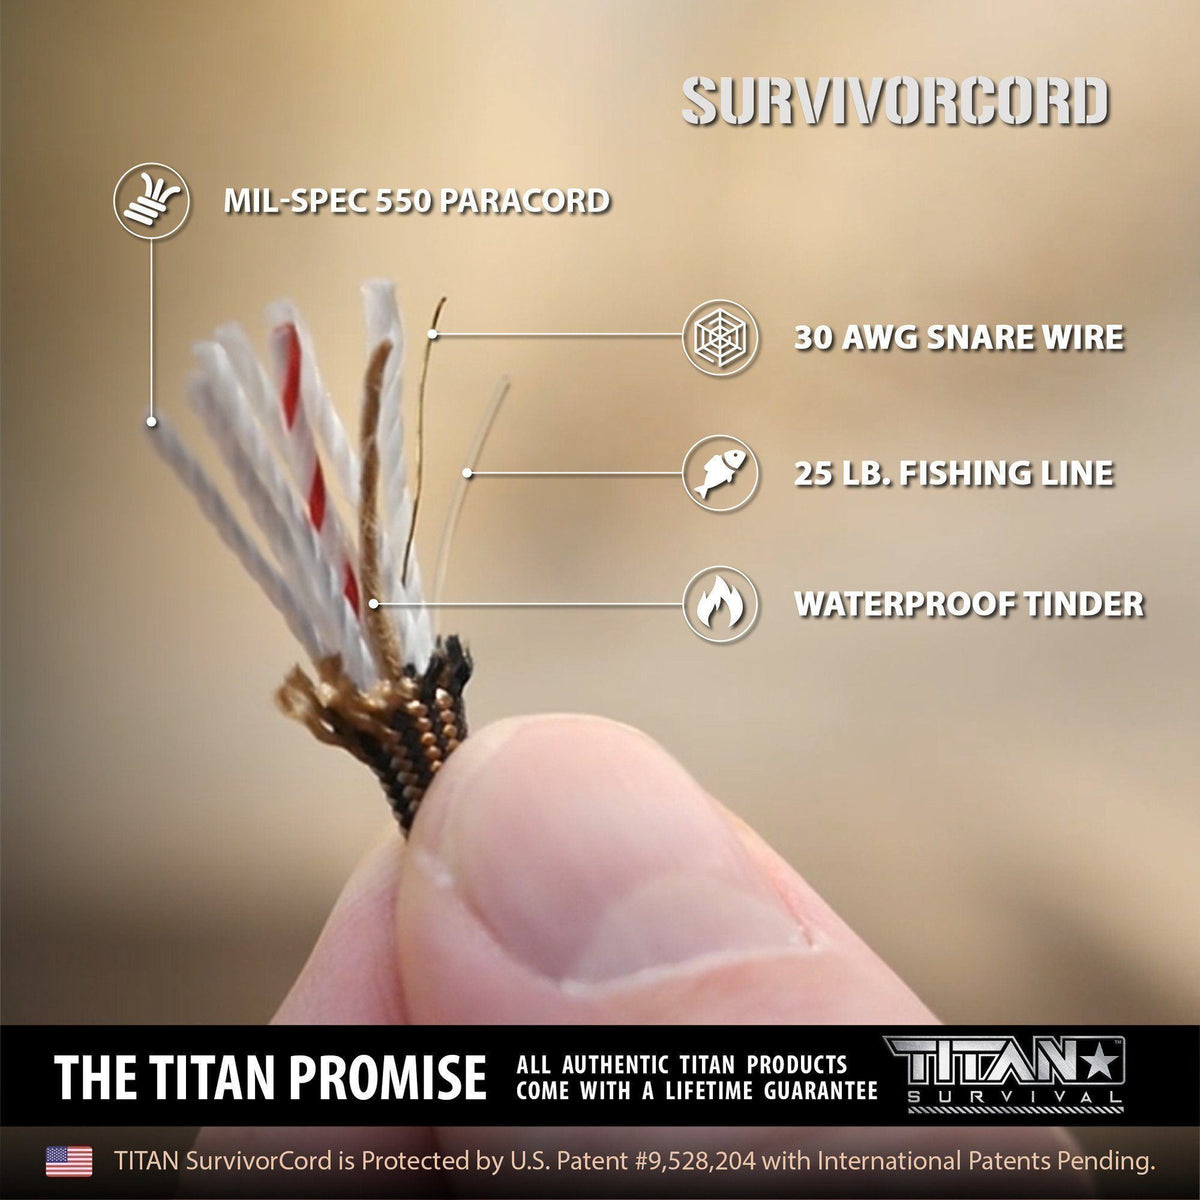 SurvivorCord | REFLECTIVE-BLACK SurvivorCord TITAN Survival